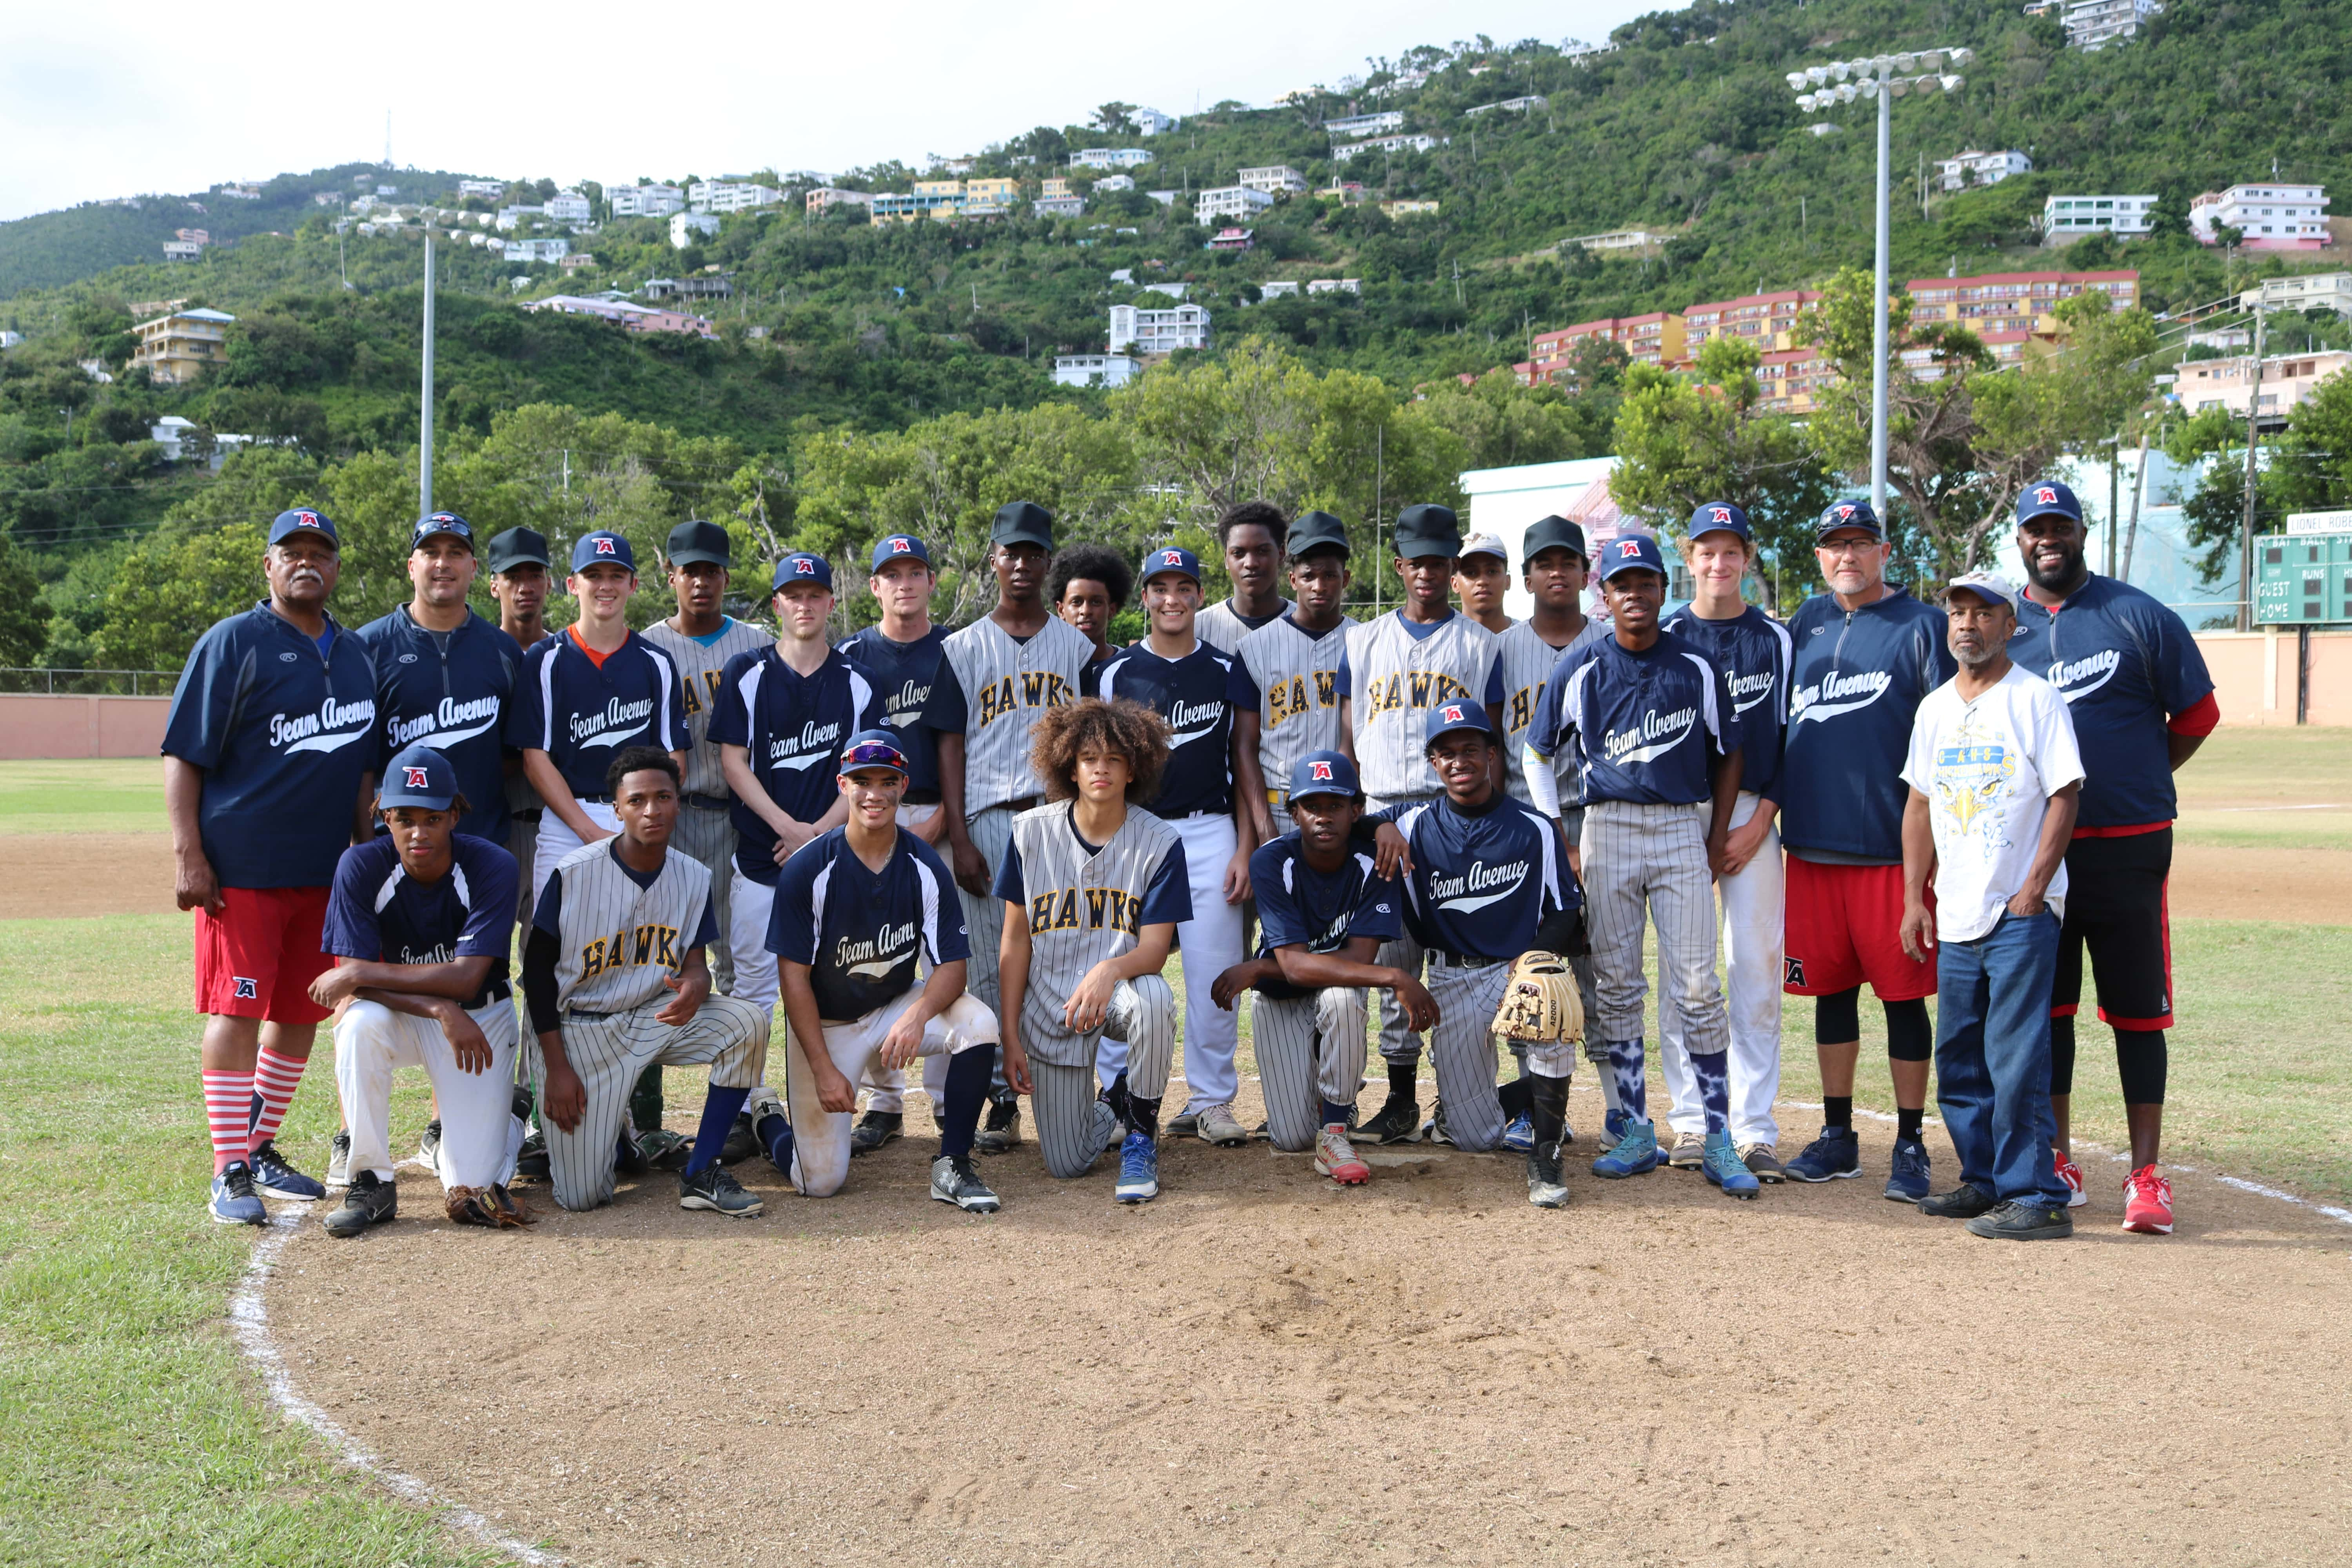 CAHS AND IEKHS HOST EXHIBITION GAMES WITH NATIONAL BASEBALL ORGANIZATION